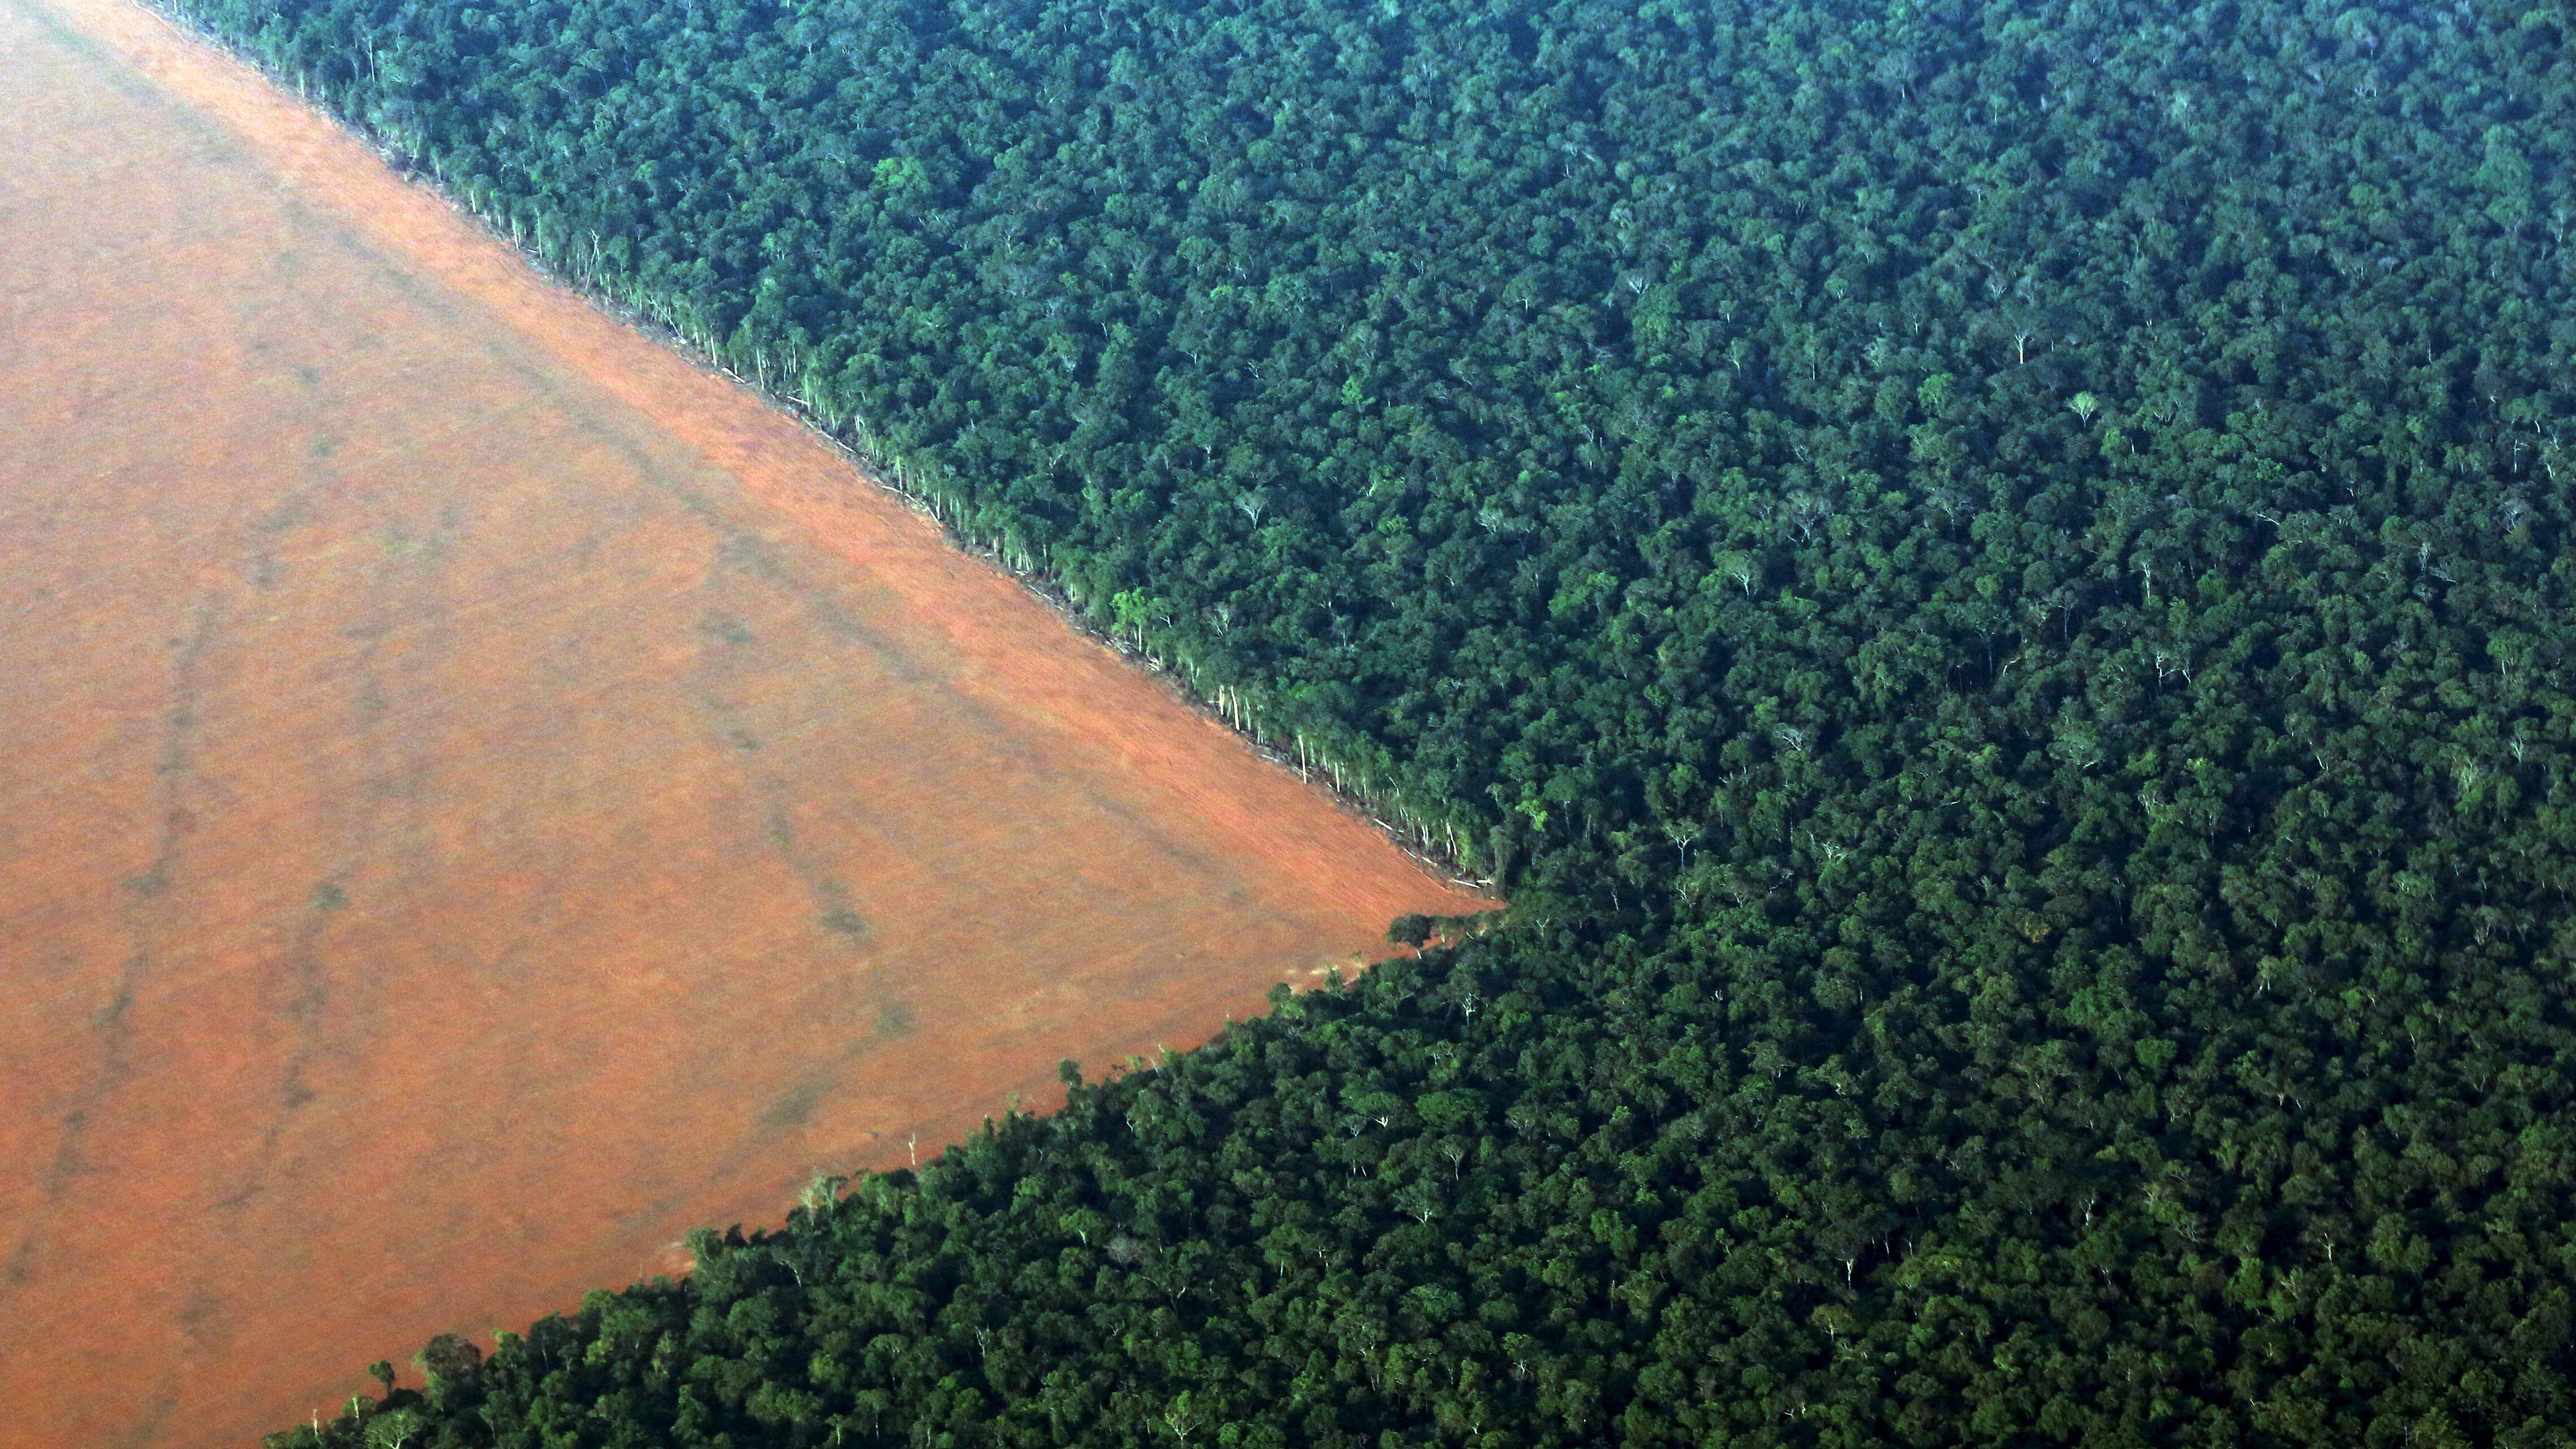 The Amazon rain forest (R), bordered by deforested land prepared for the planting of soybeans, is pictured in this aerial photo taken over Mato Grosso state in western Brazil, October 4, 2015. Brazil will produce a record 97.8 million tonnes of soybeans in 2015/16, a 3.2 percent rise compared to 2014/15, but much of this additional volume will be stored in the country, with little impact on export volumes, estimated on Monday the Brazilian Association of Vegetable Oil Industries (ABIOVE).  Picture taken October 4, 2015.